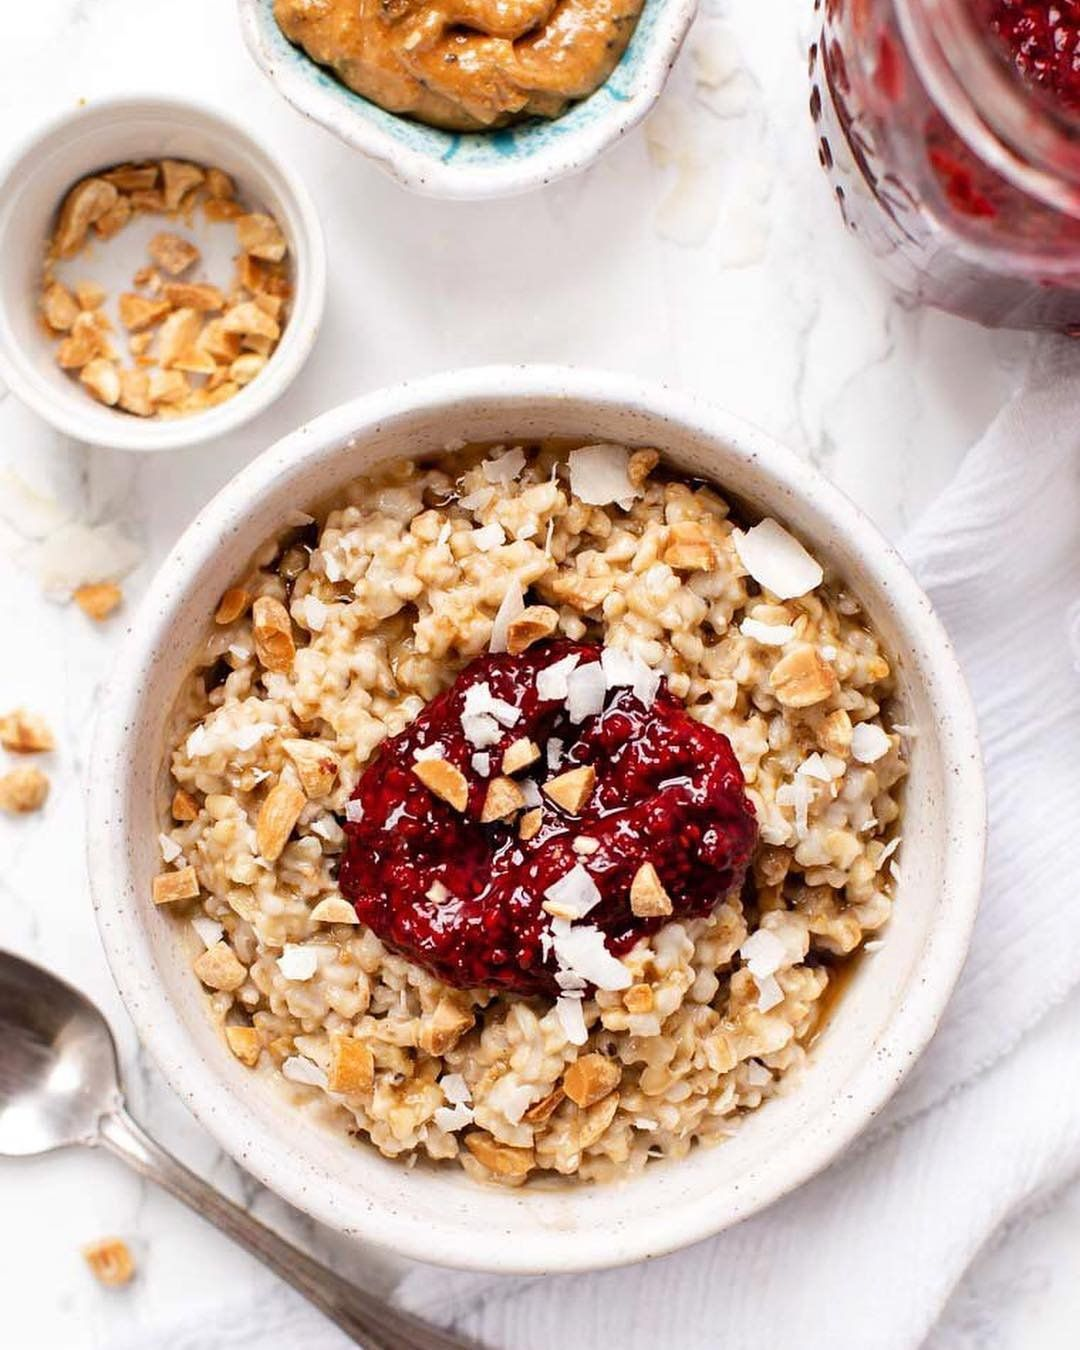 Simplyquinoa Has Put Together 6 Different Healthy Delicious Fl Smoothie Bowl Recipe Healthy Smoothie Bowls Recipe Easy Smoothie Bowl Recipe Healthy Breakfast